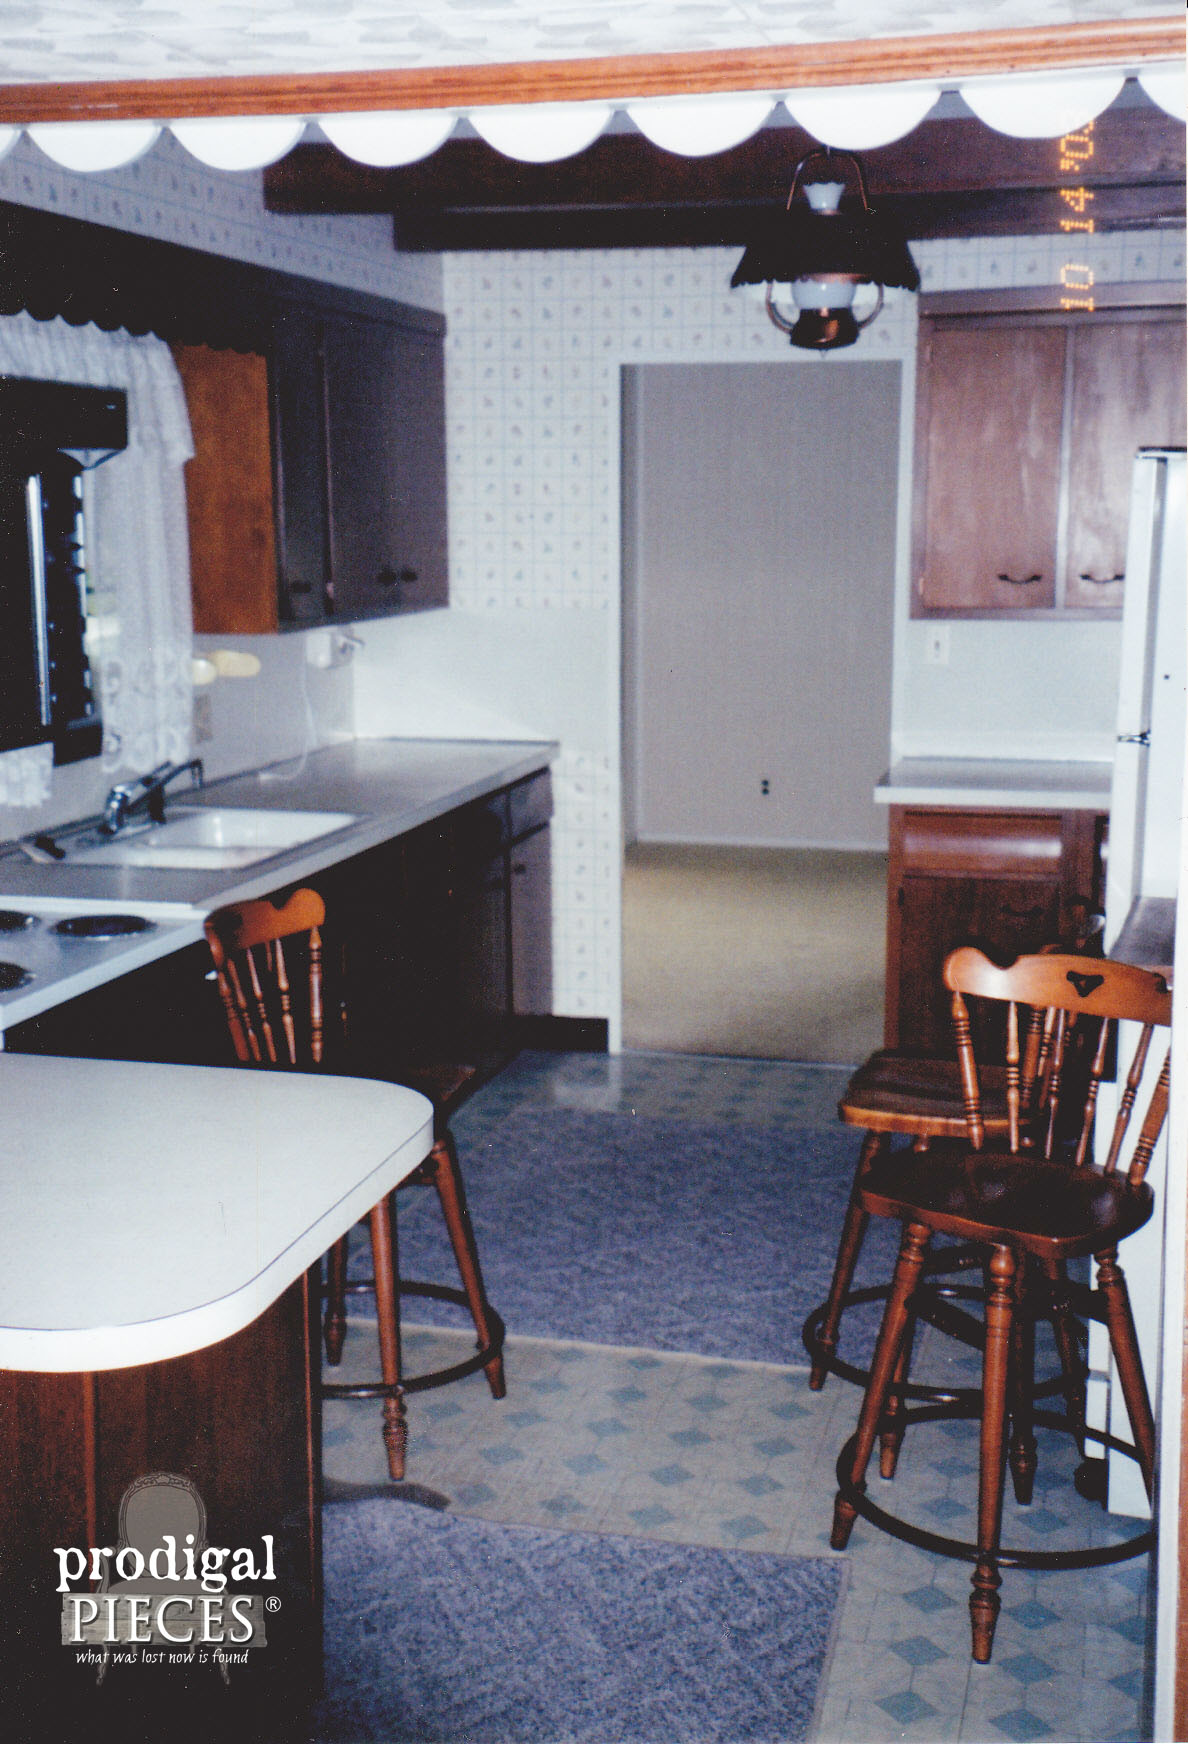 Outdated Kitchen Remodel with New Flooring by Prodigal Pieces | prodigalpieces.com